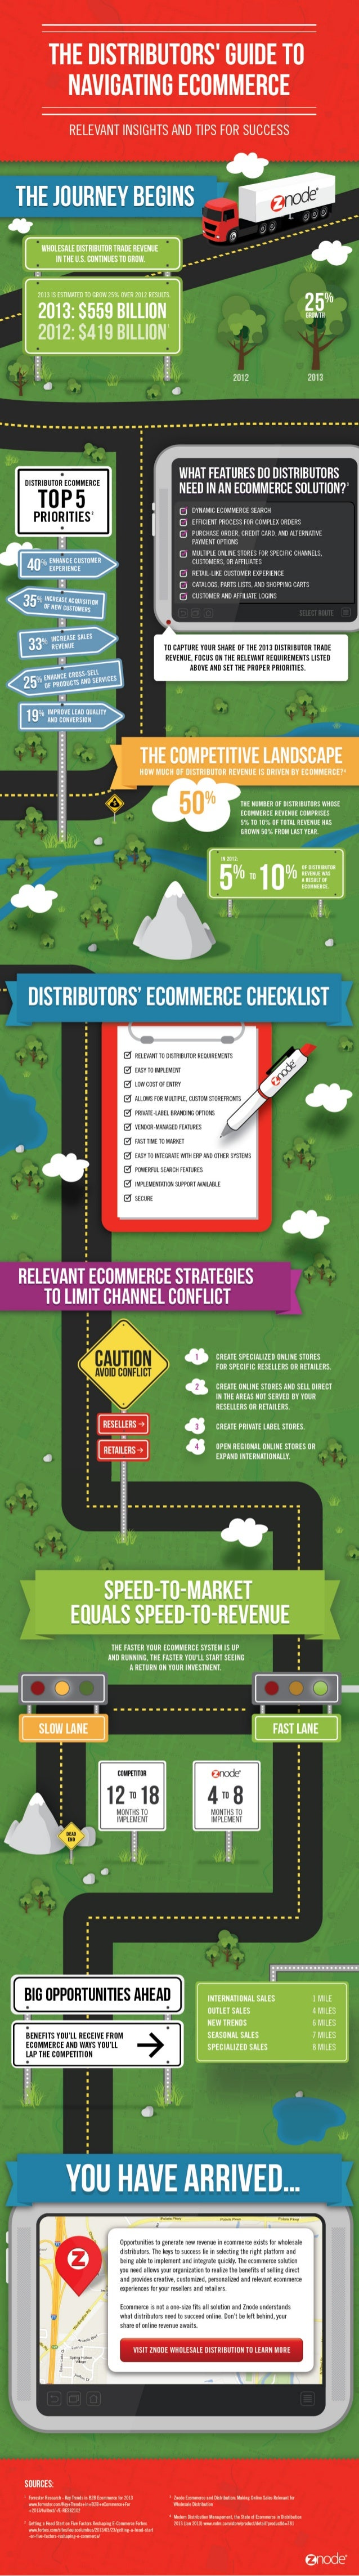 Infographic: The Distributors' Guide to Navigating Ecommerce